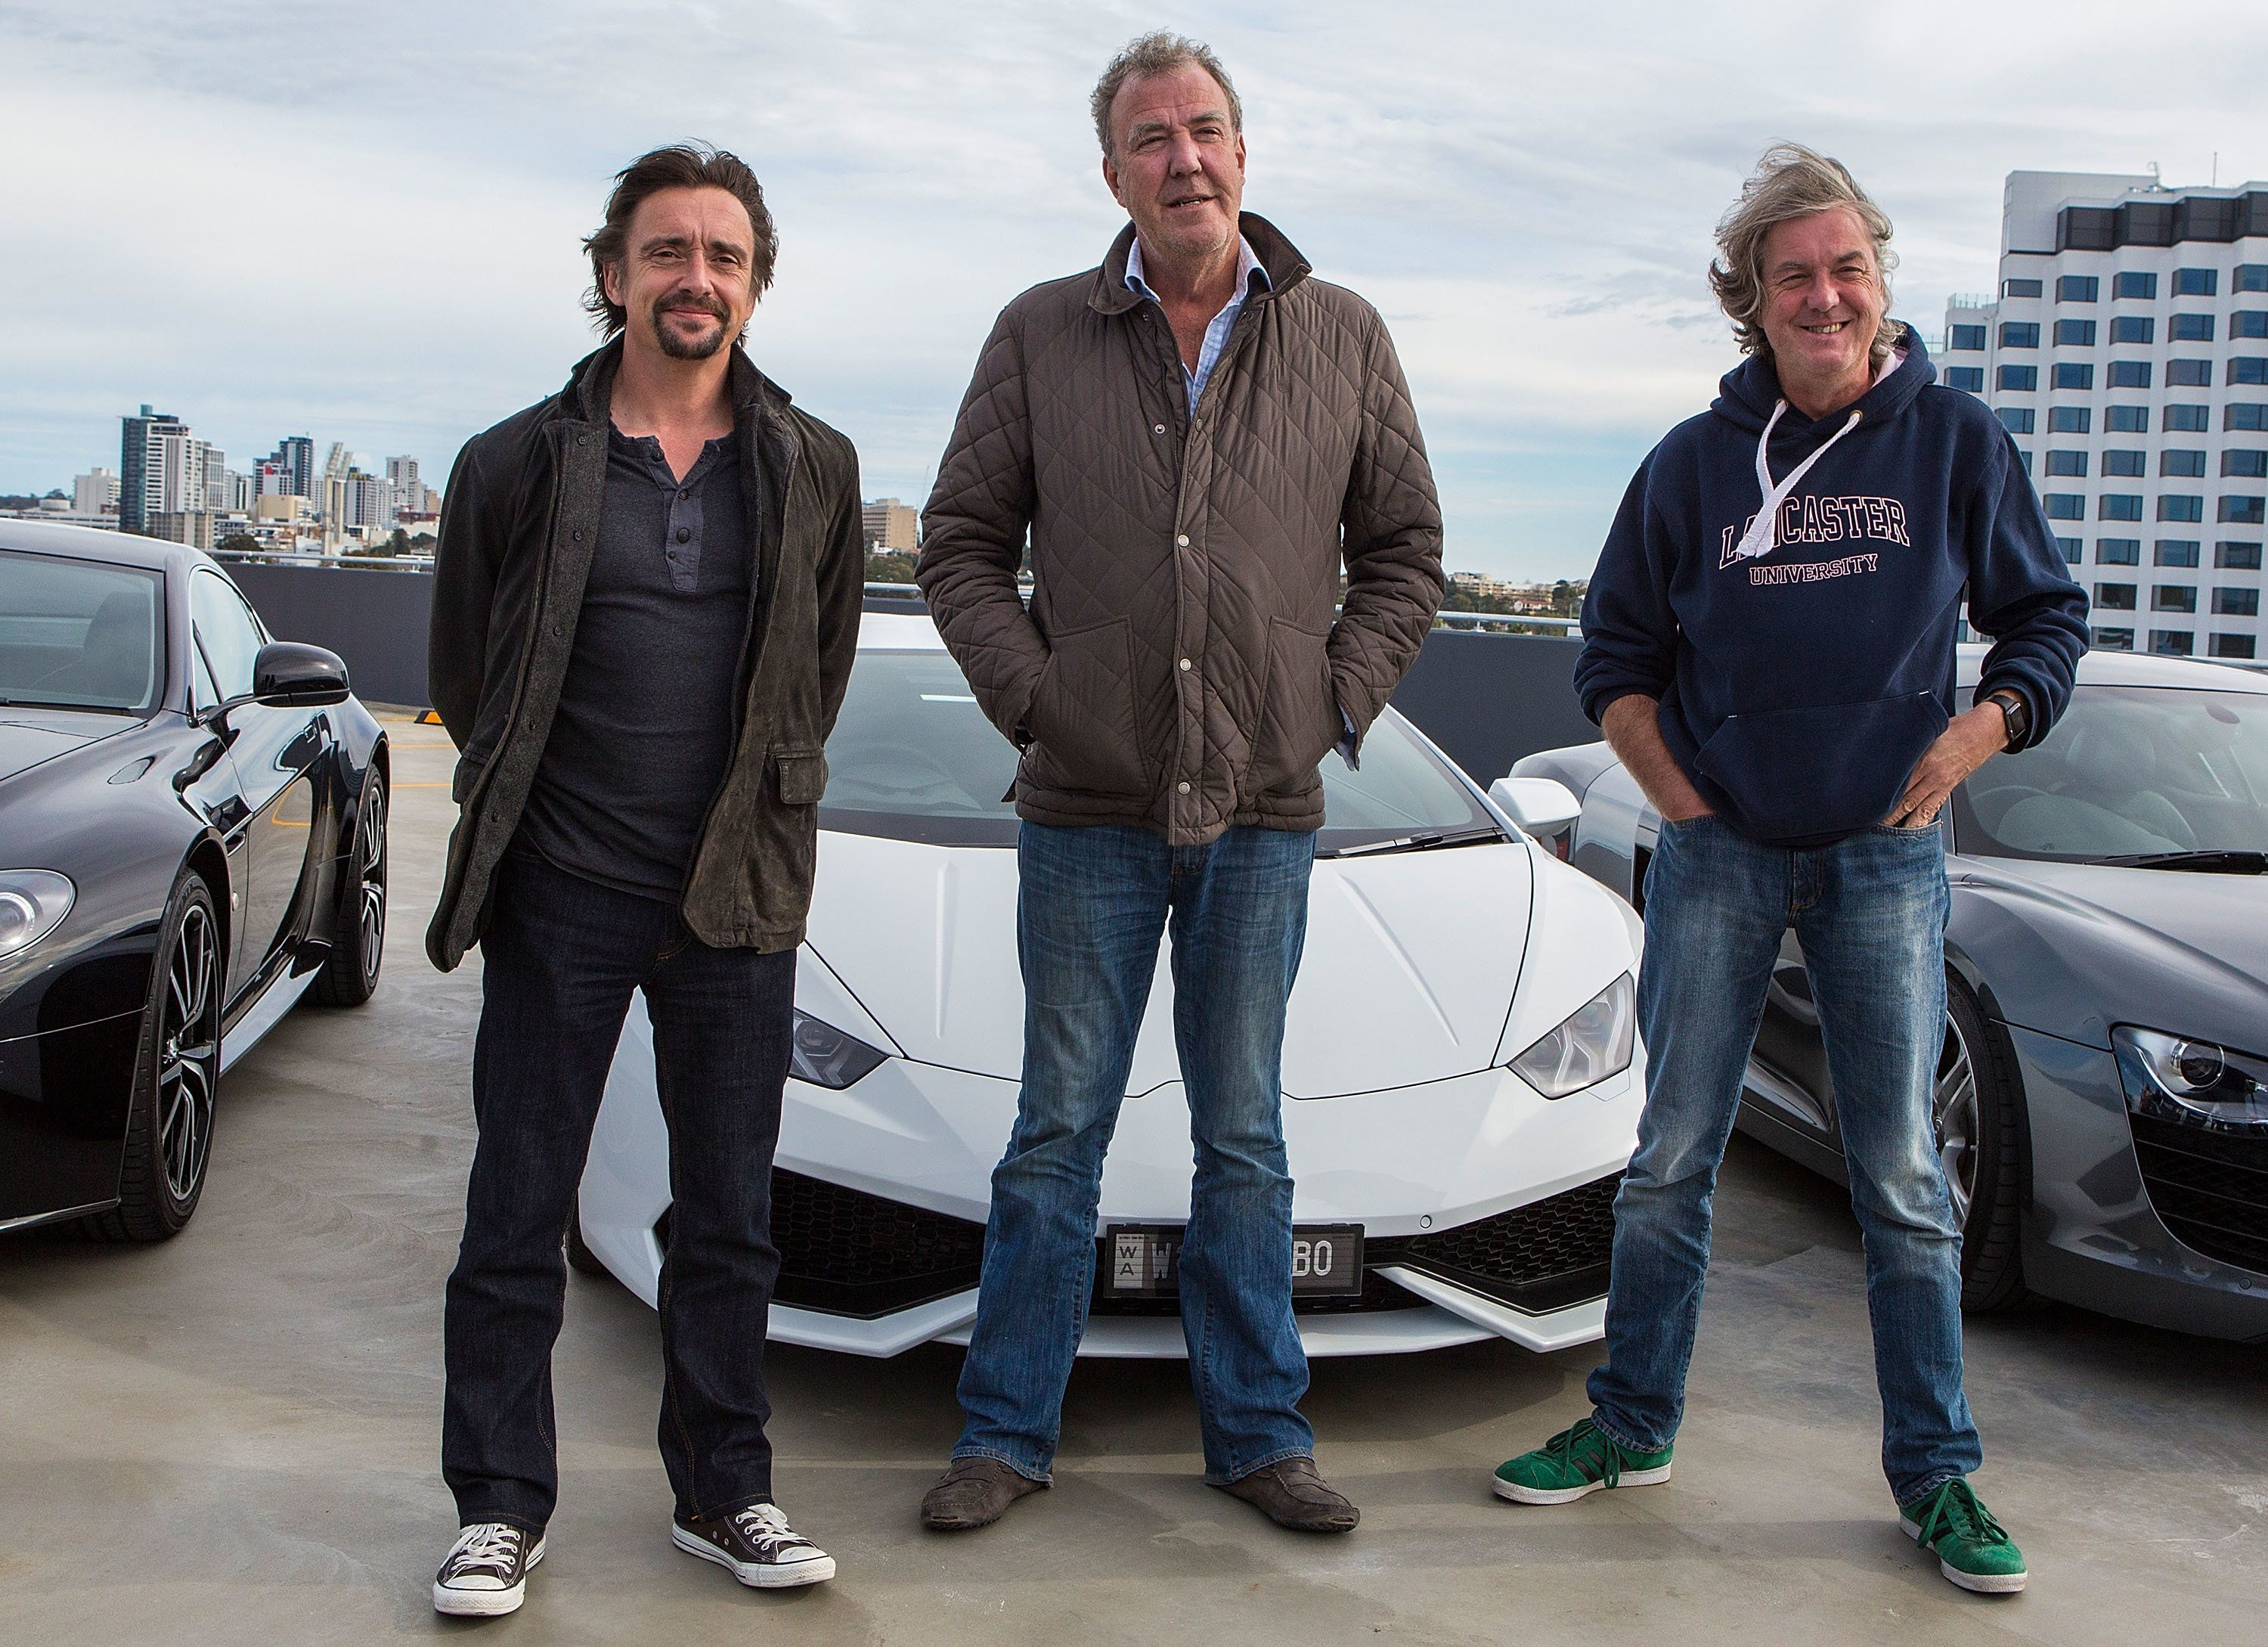 James May And Jeremy Clarkson 'Thought Richard Hammond Was Dead' When They Saw Crash